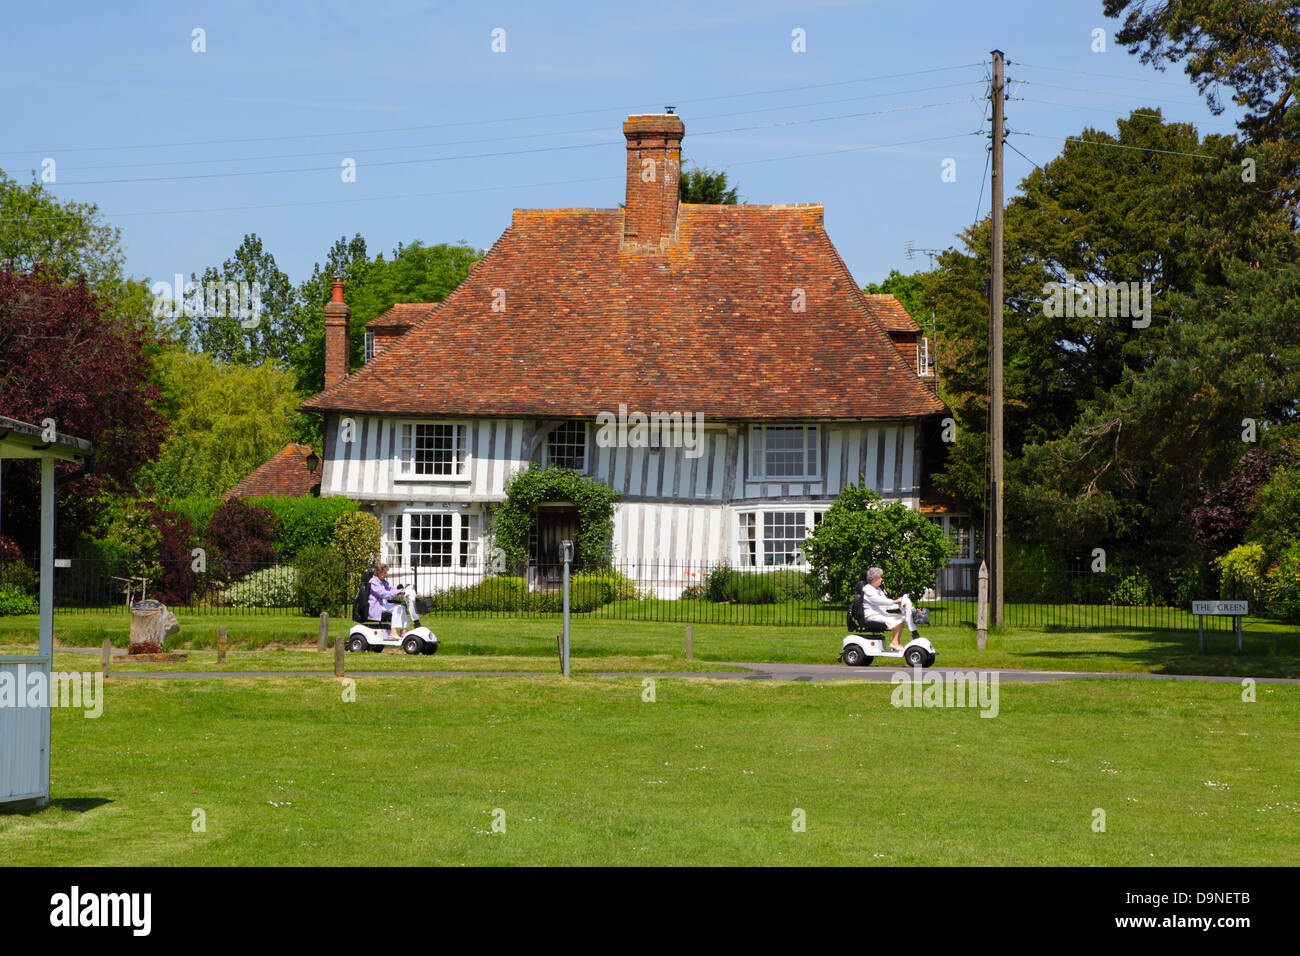 Two ladies on mobility scooters riding along The Green, Woodchurch Kent England UK GB - Stock Image